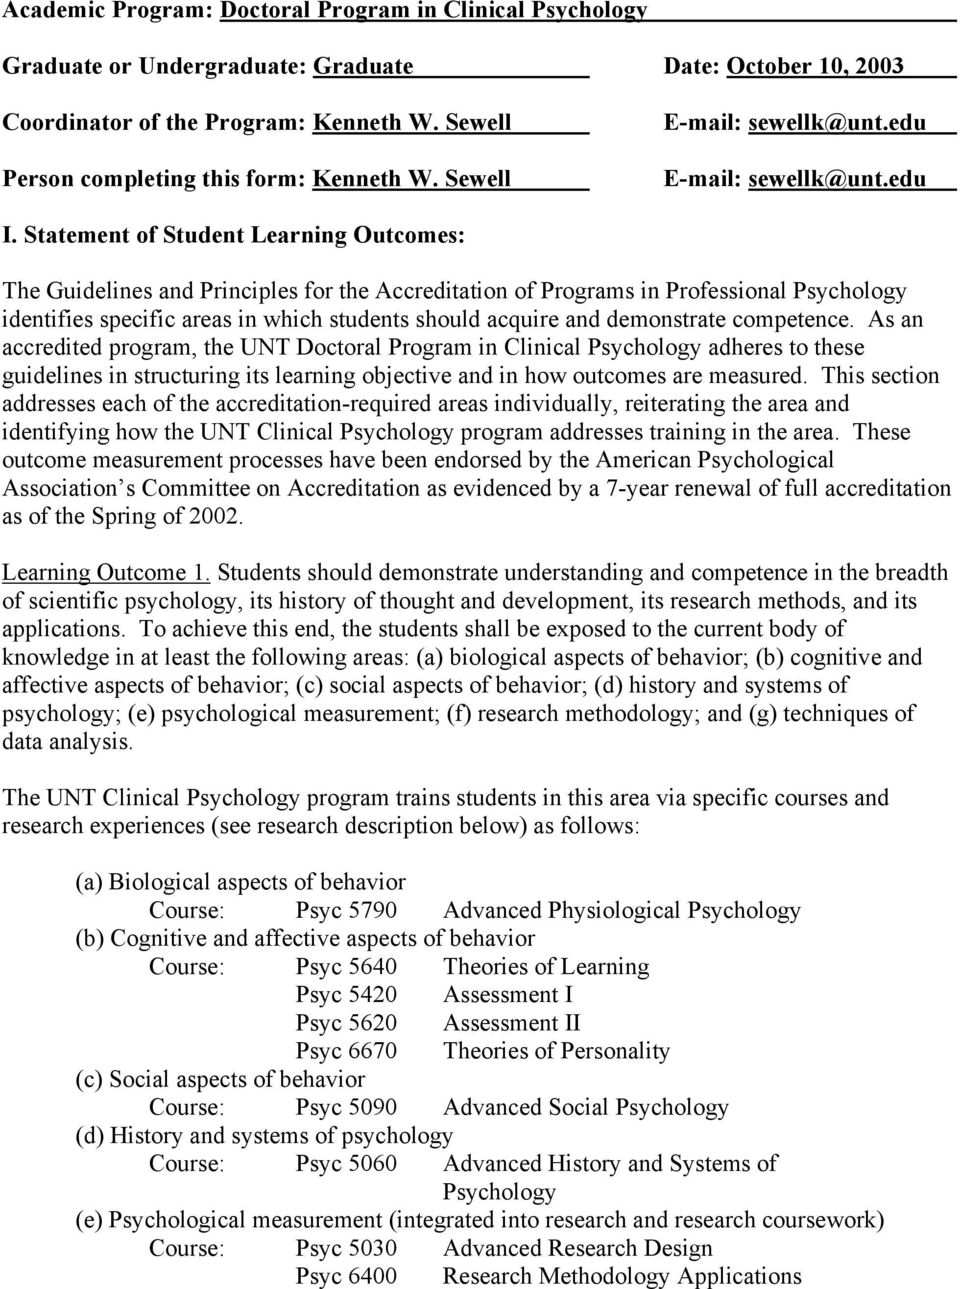 Statement of Student Learning Outcomes: The Guidelines and Principles for the Accreditation of Programs in Professional Psychology identifies specific areas in which students should acquire and